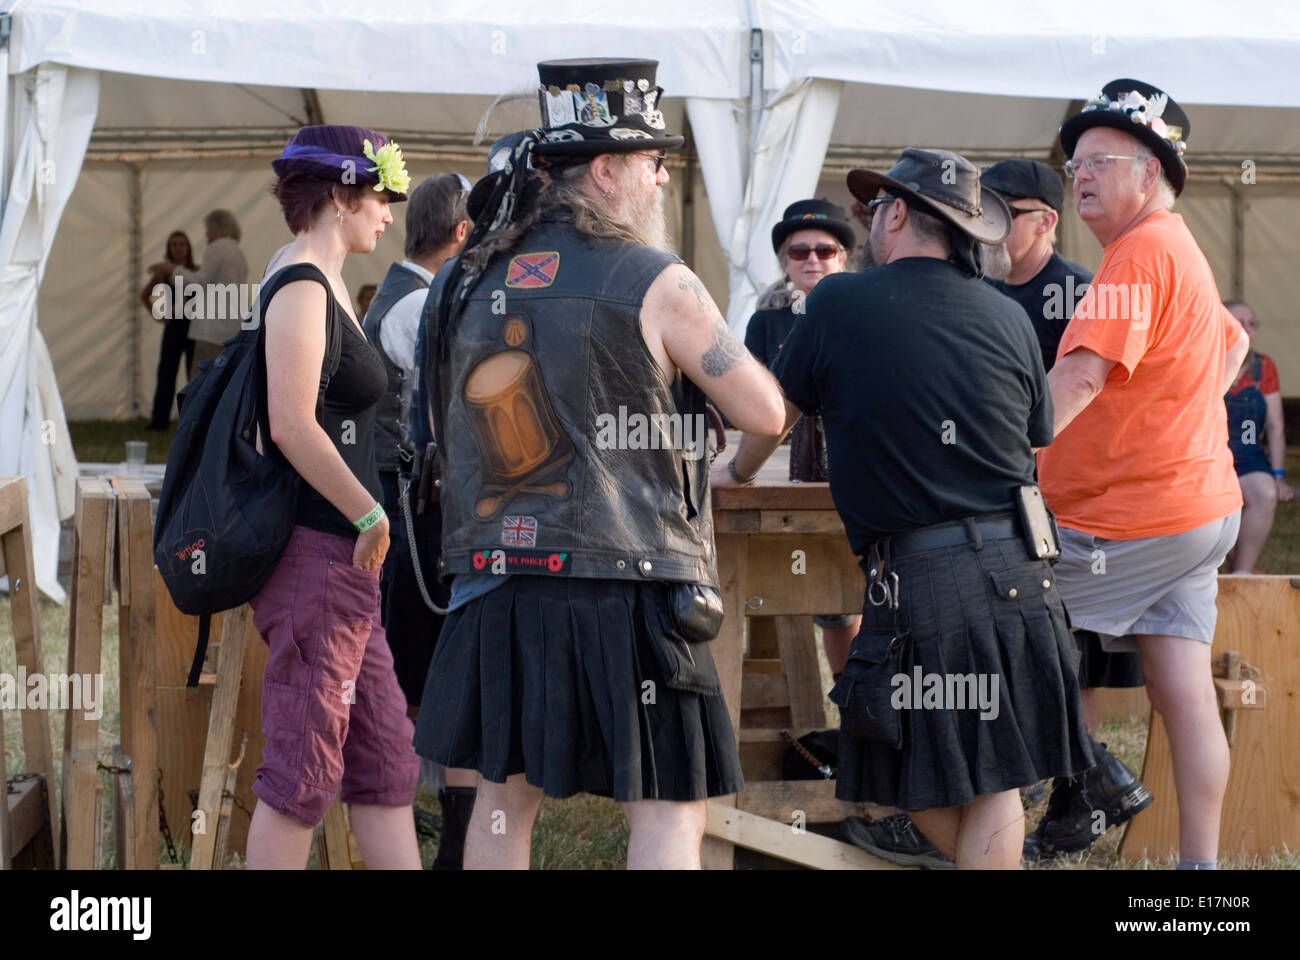 Tewkesbury Medieval Festival, July 2013: revelers at the beer tent in strange costume of leather, kilts and top hats - Stock Image